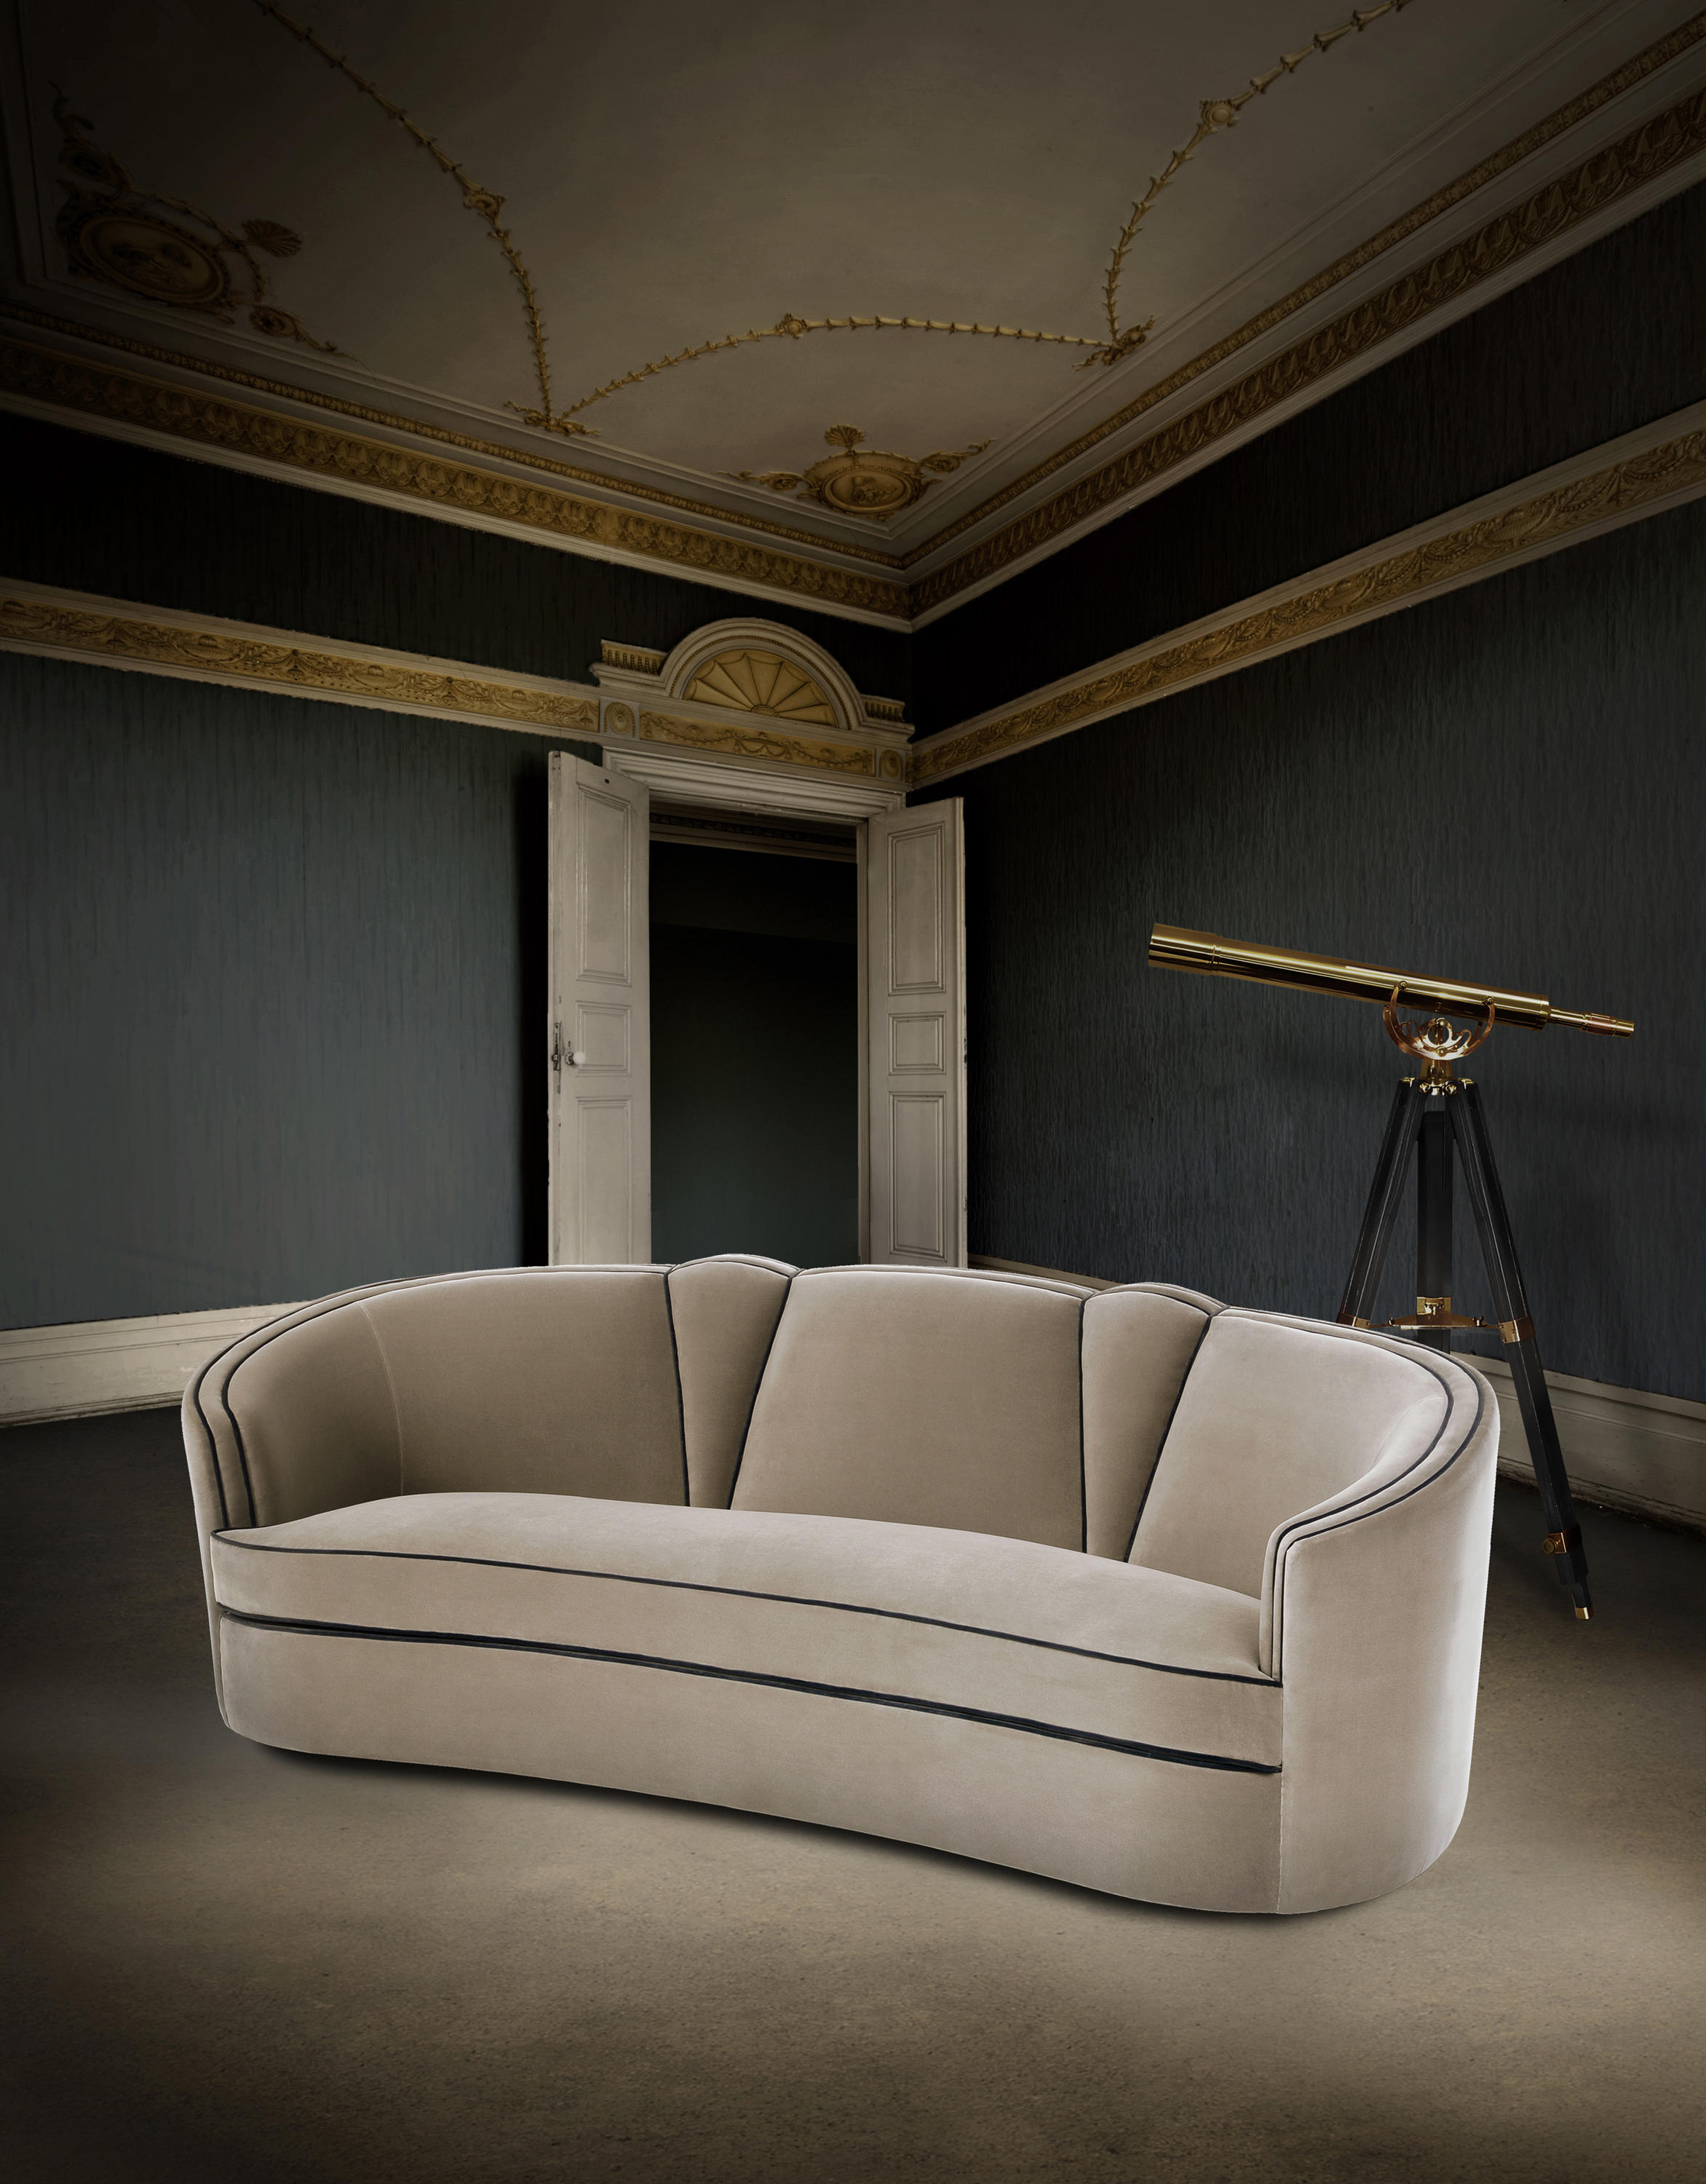 Josephine | Armchair – Armchairs From Munna | Architonic Throughout Josephine Sofa Chairs (View 21 of 25)